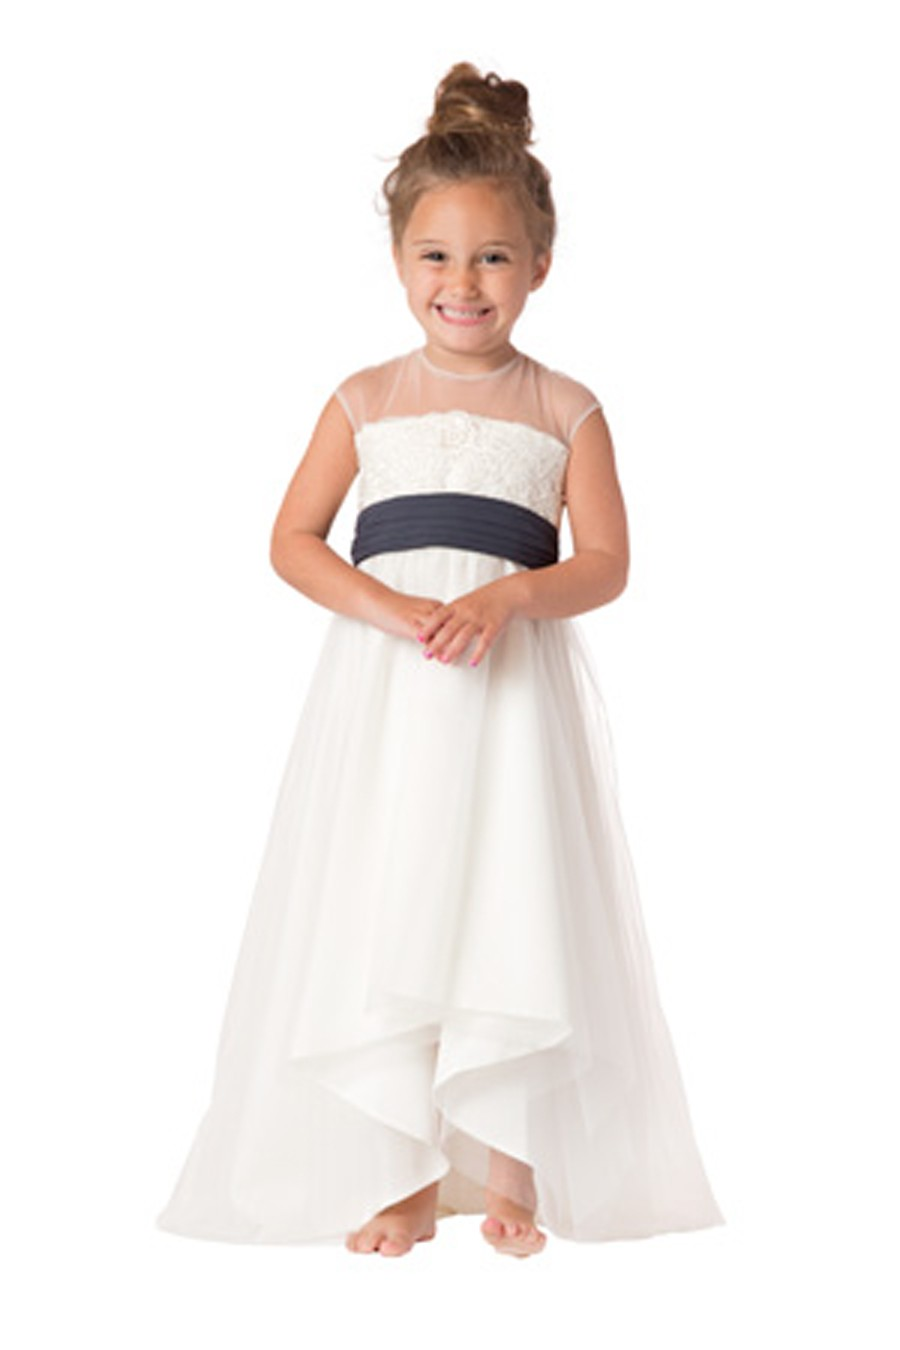 A-Line First Communion Dresses for Girls Satin Flower Girl Dresses for Weddings Long Mother Daughter Dresses With Sashes